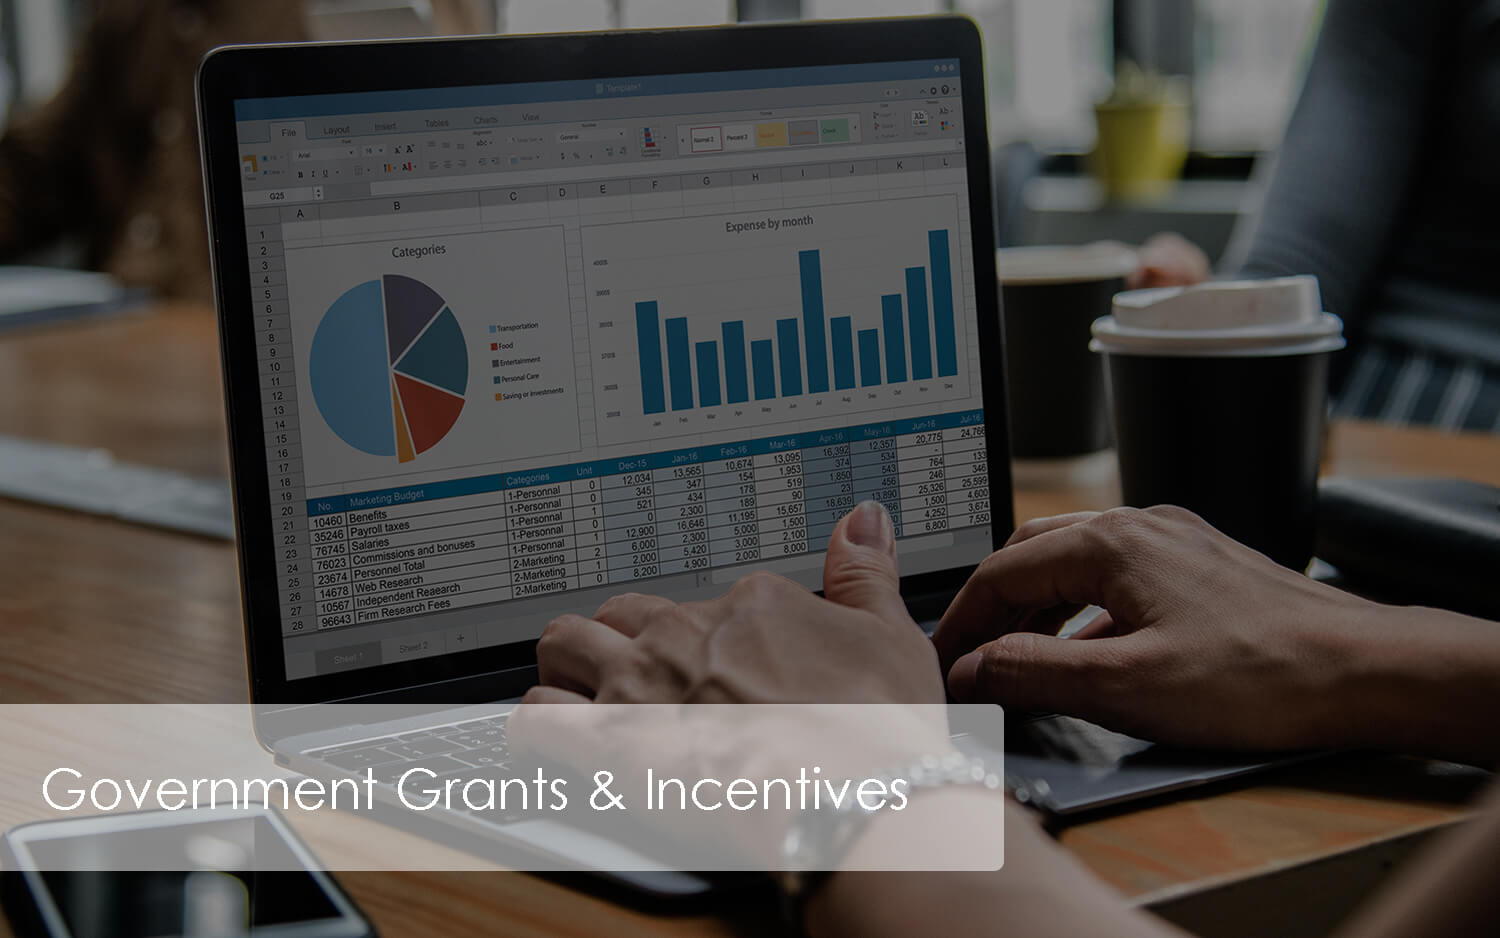 Government Grants & Incentives